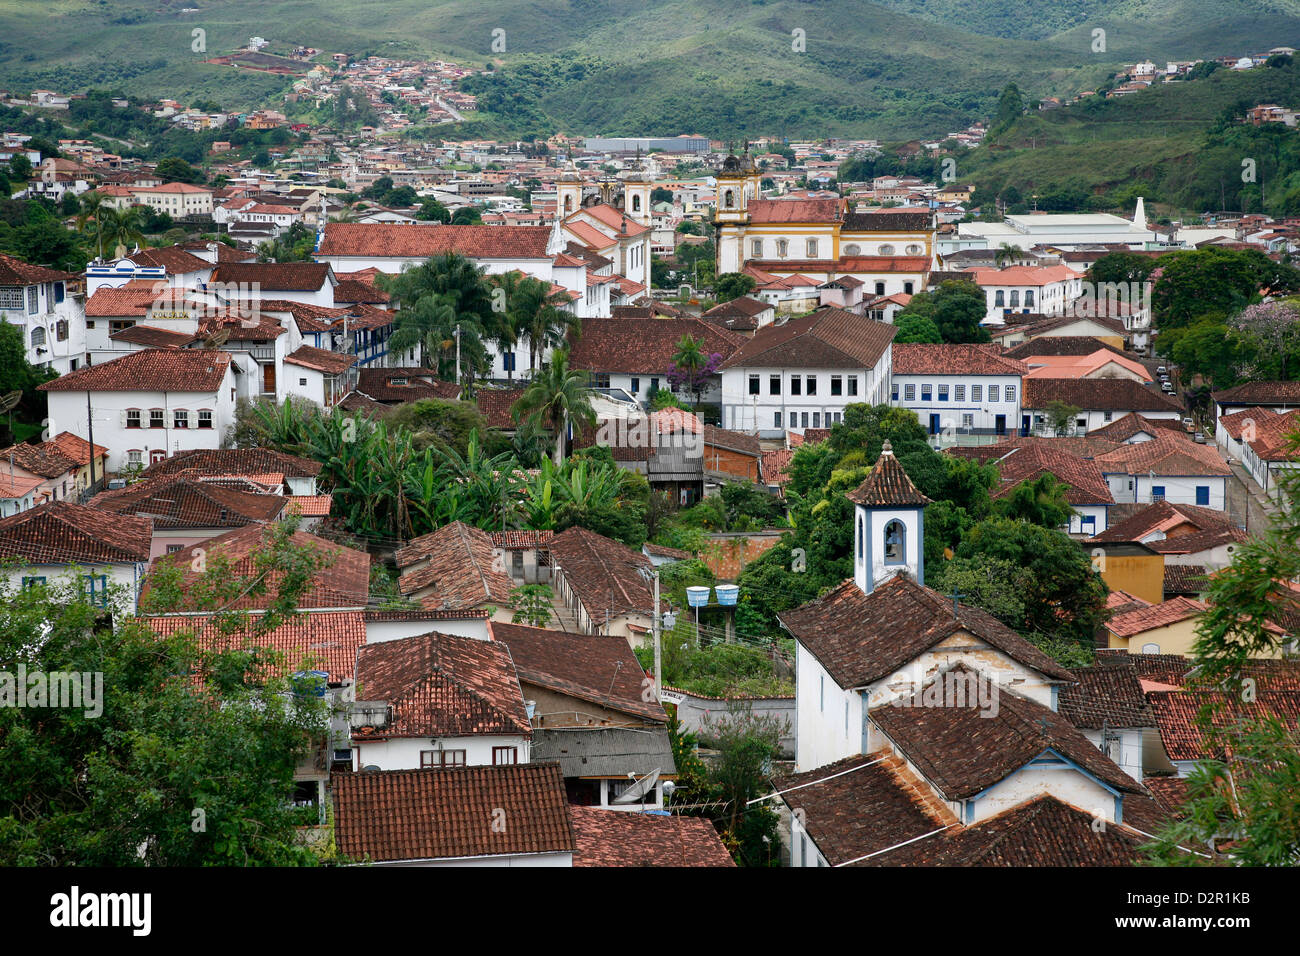 View over Mariana from the from the bell tower of Basilica de Sao Pedro dos Clerigos, Mariana, Minas Gerais, Brazil - Stock Image